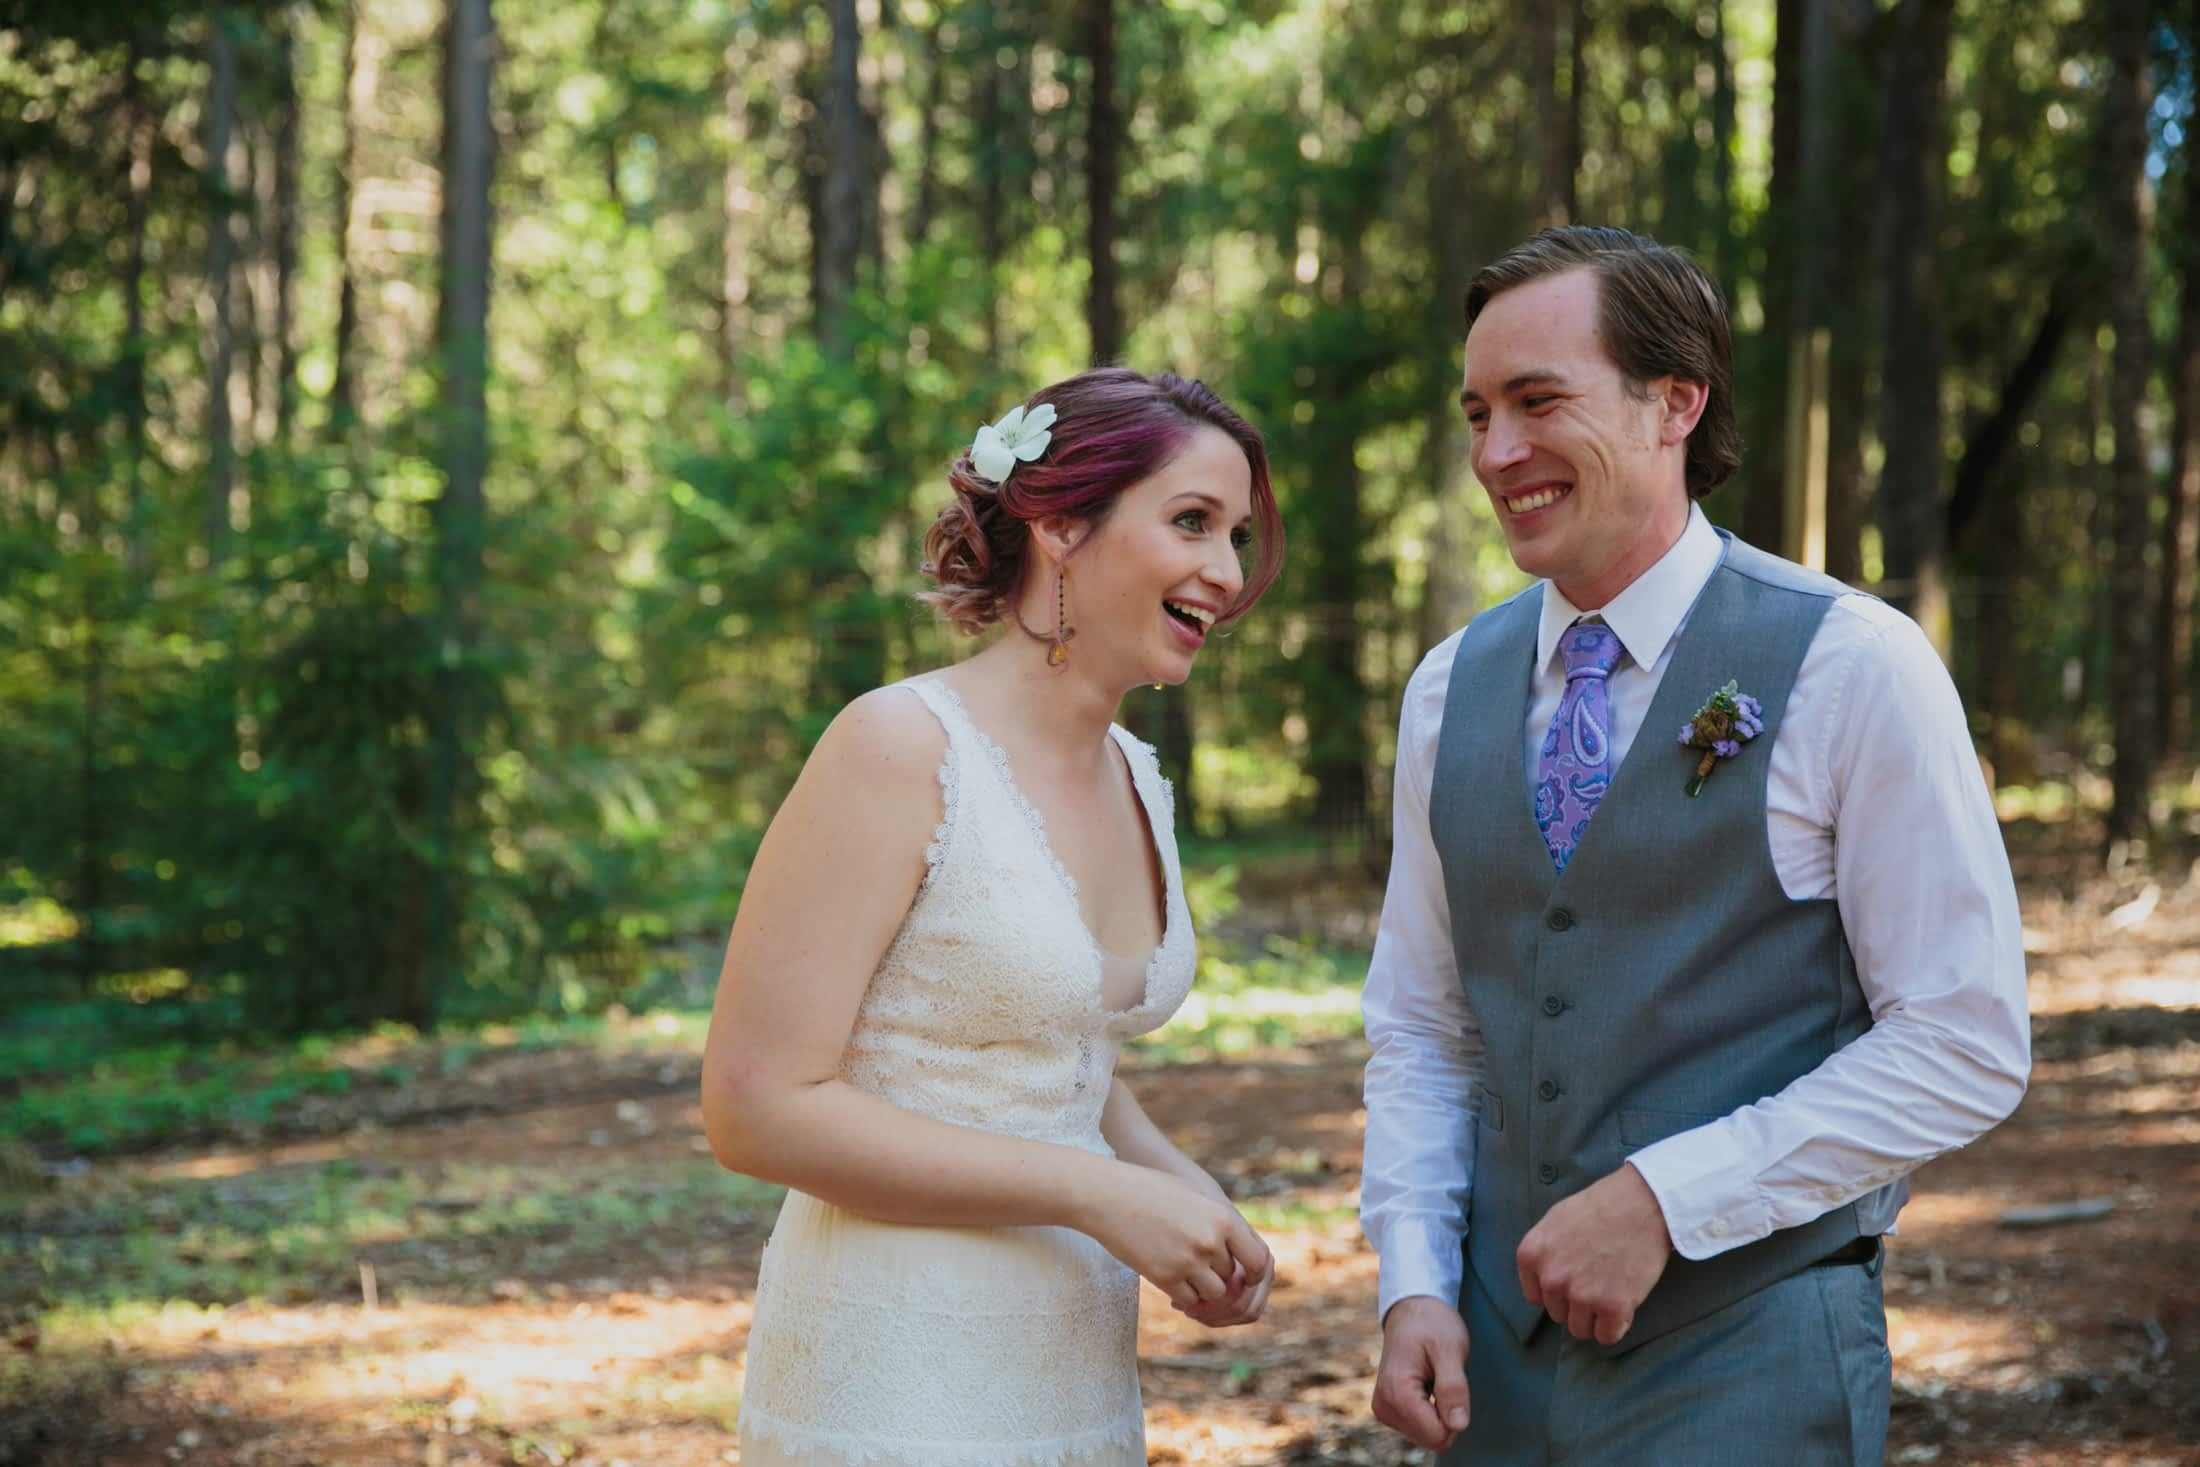 Bride and groom laughing in the woods.